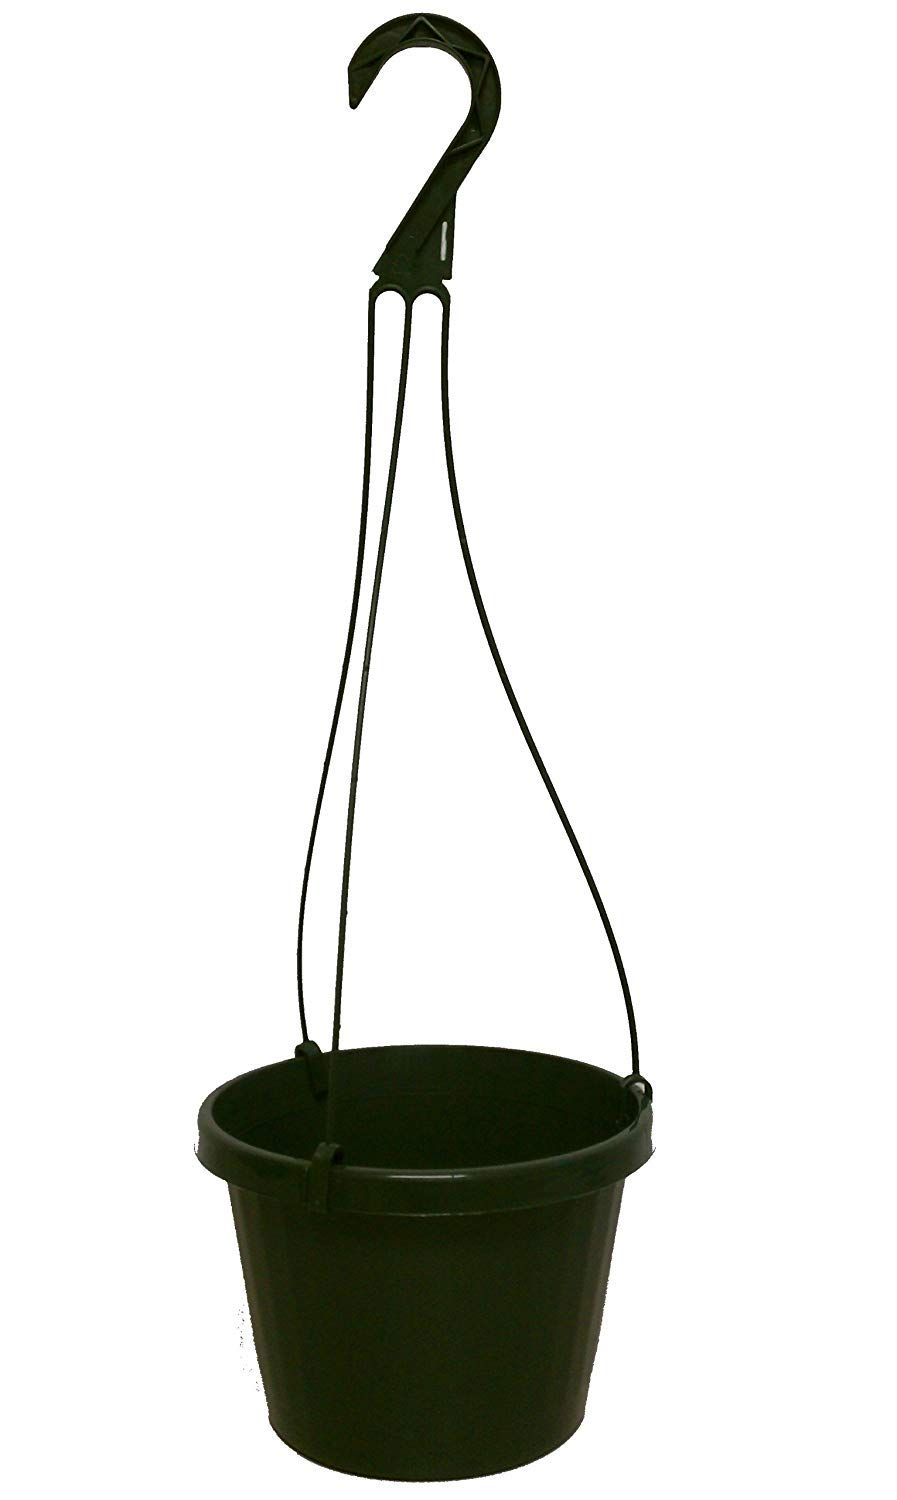 10 New 10 Inch Hanging Basket Plastic Nursery Pots Green Pots are 9 Inch Round at The Top and 6.2 Inch Deep and Includes Internal Dish.